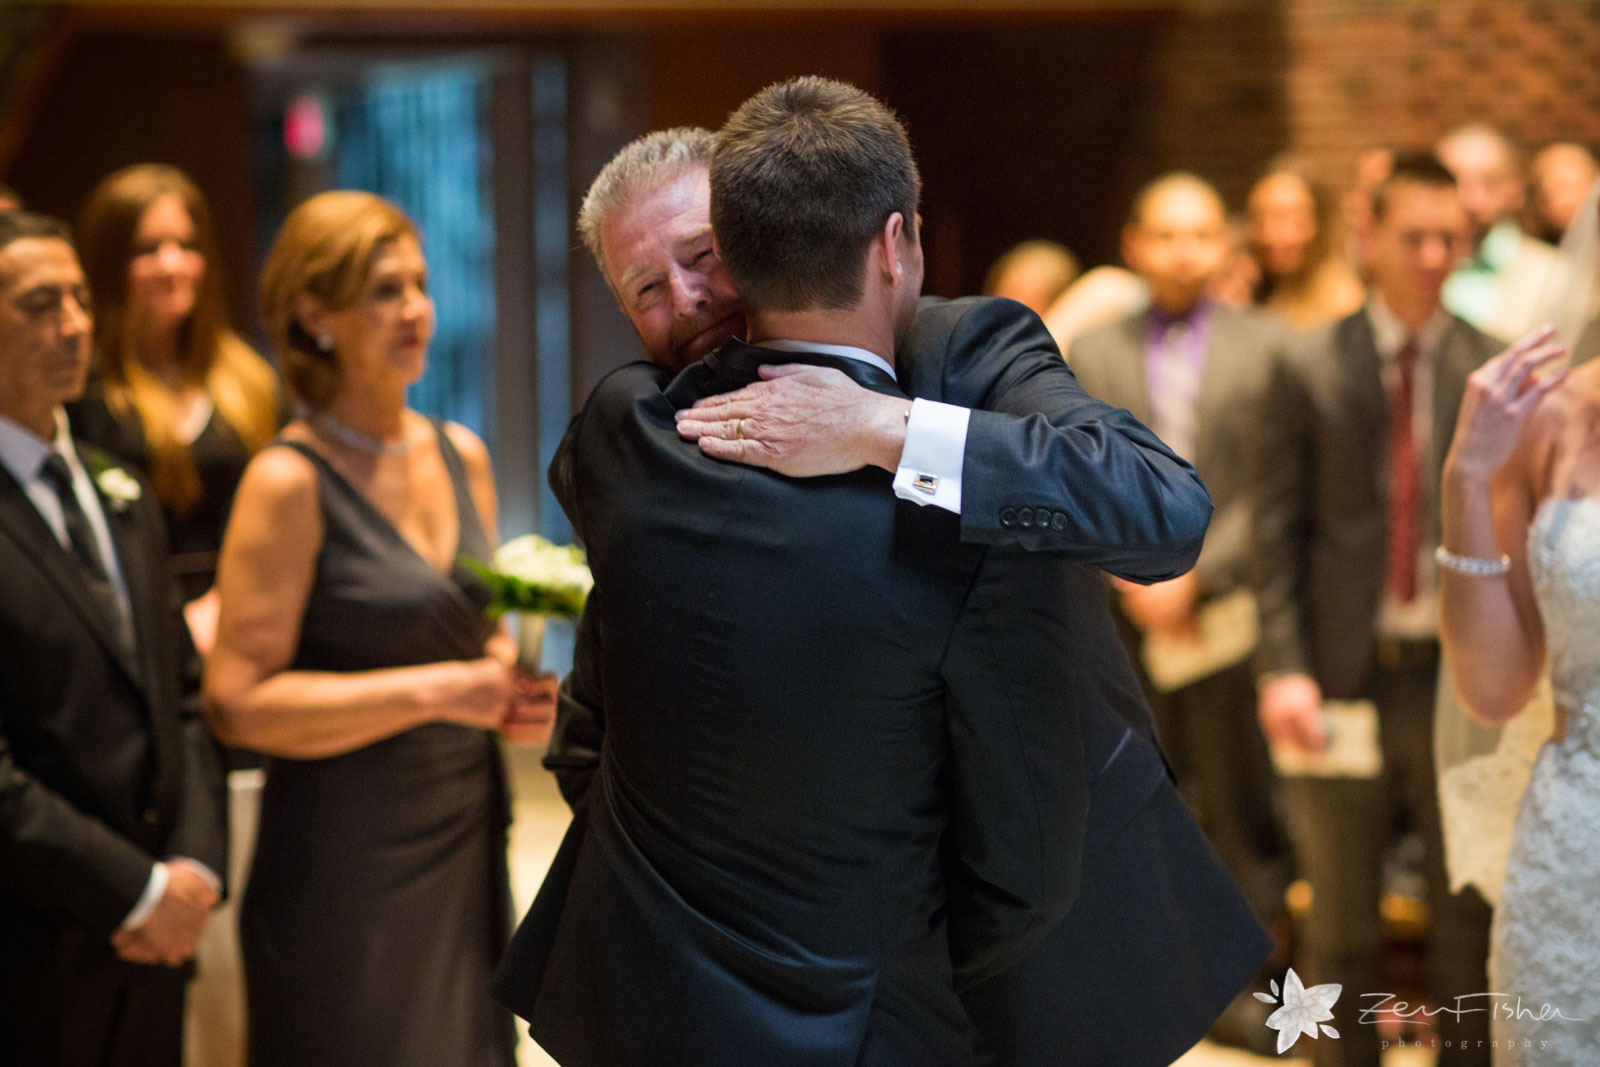 Father of the bride gives away his daughter and hugs the groom in an emotional embrace.